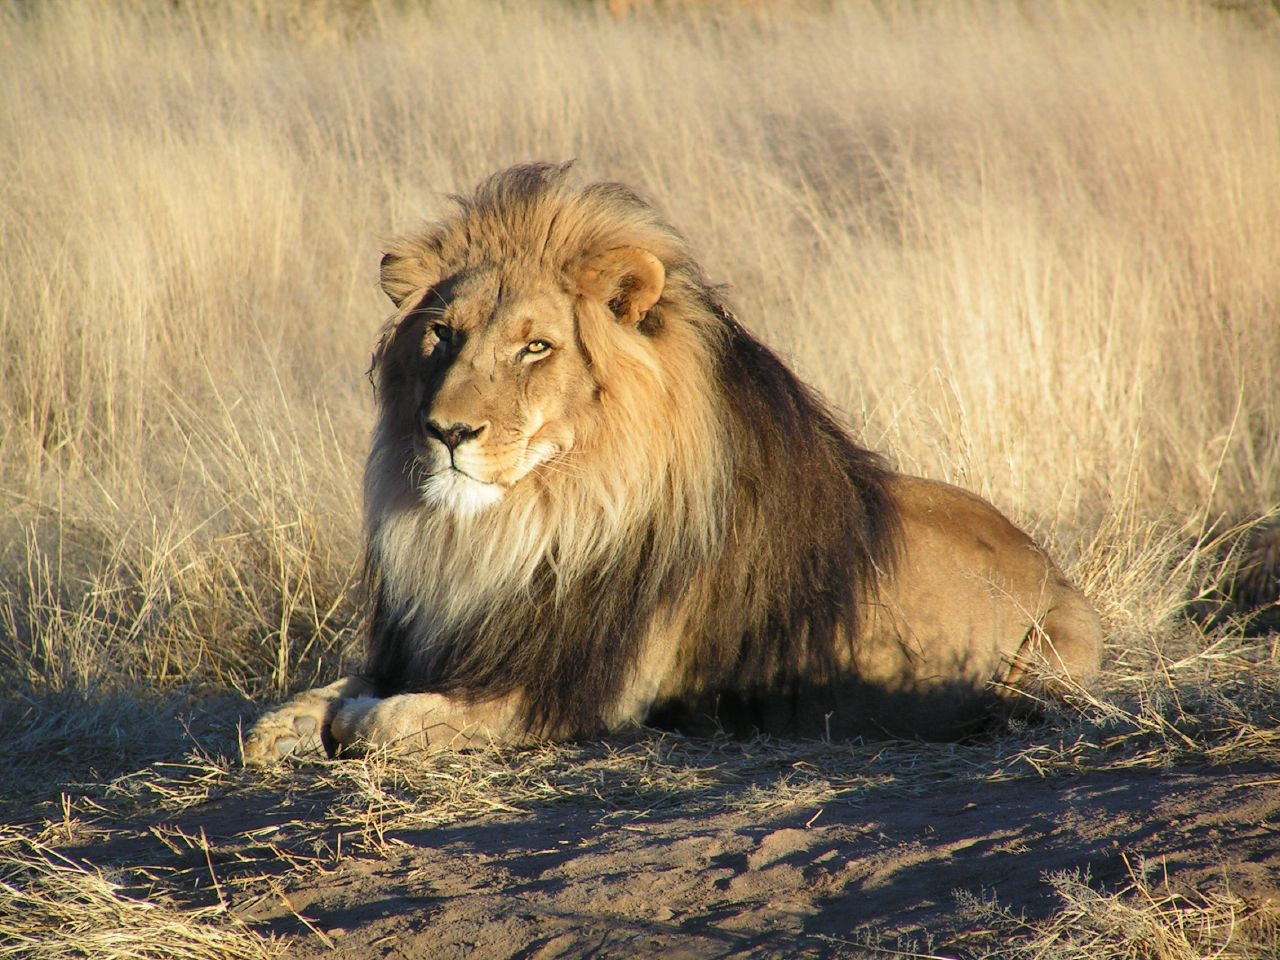 http://upload.wikimedia.org/wikipedia/commons/7/73/Lion_waiting_in_Namibia.jpg